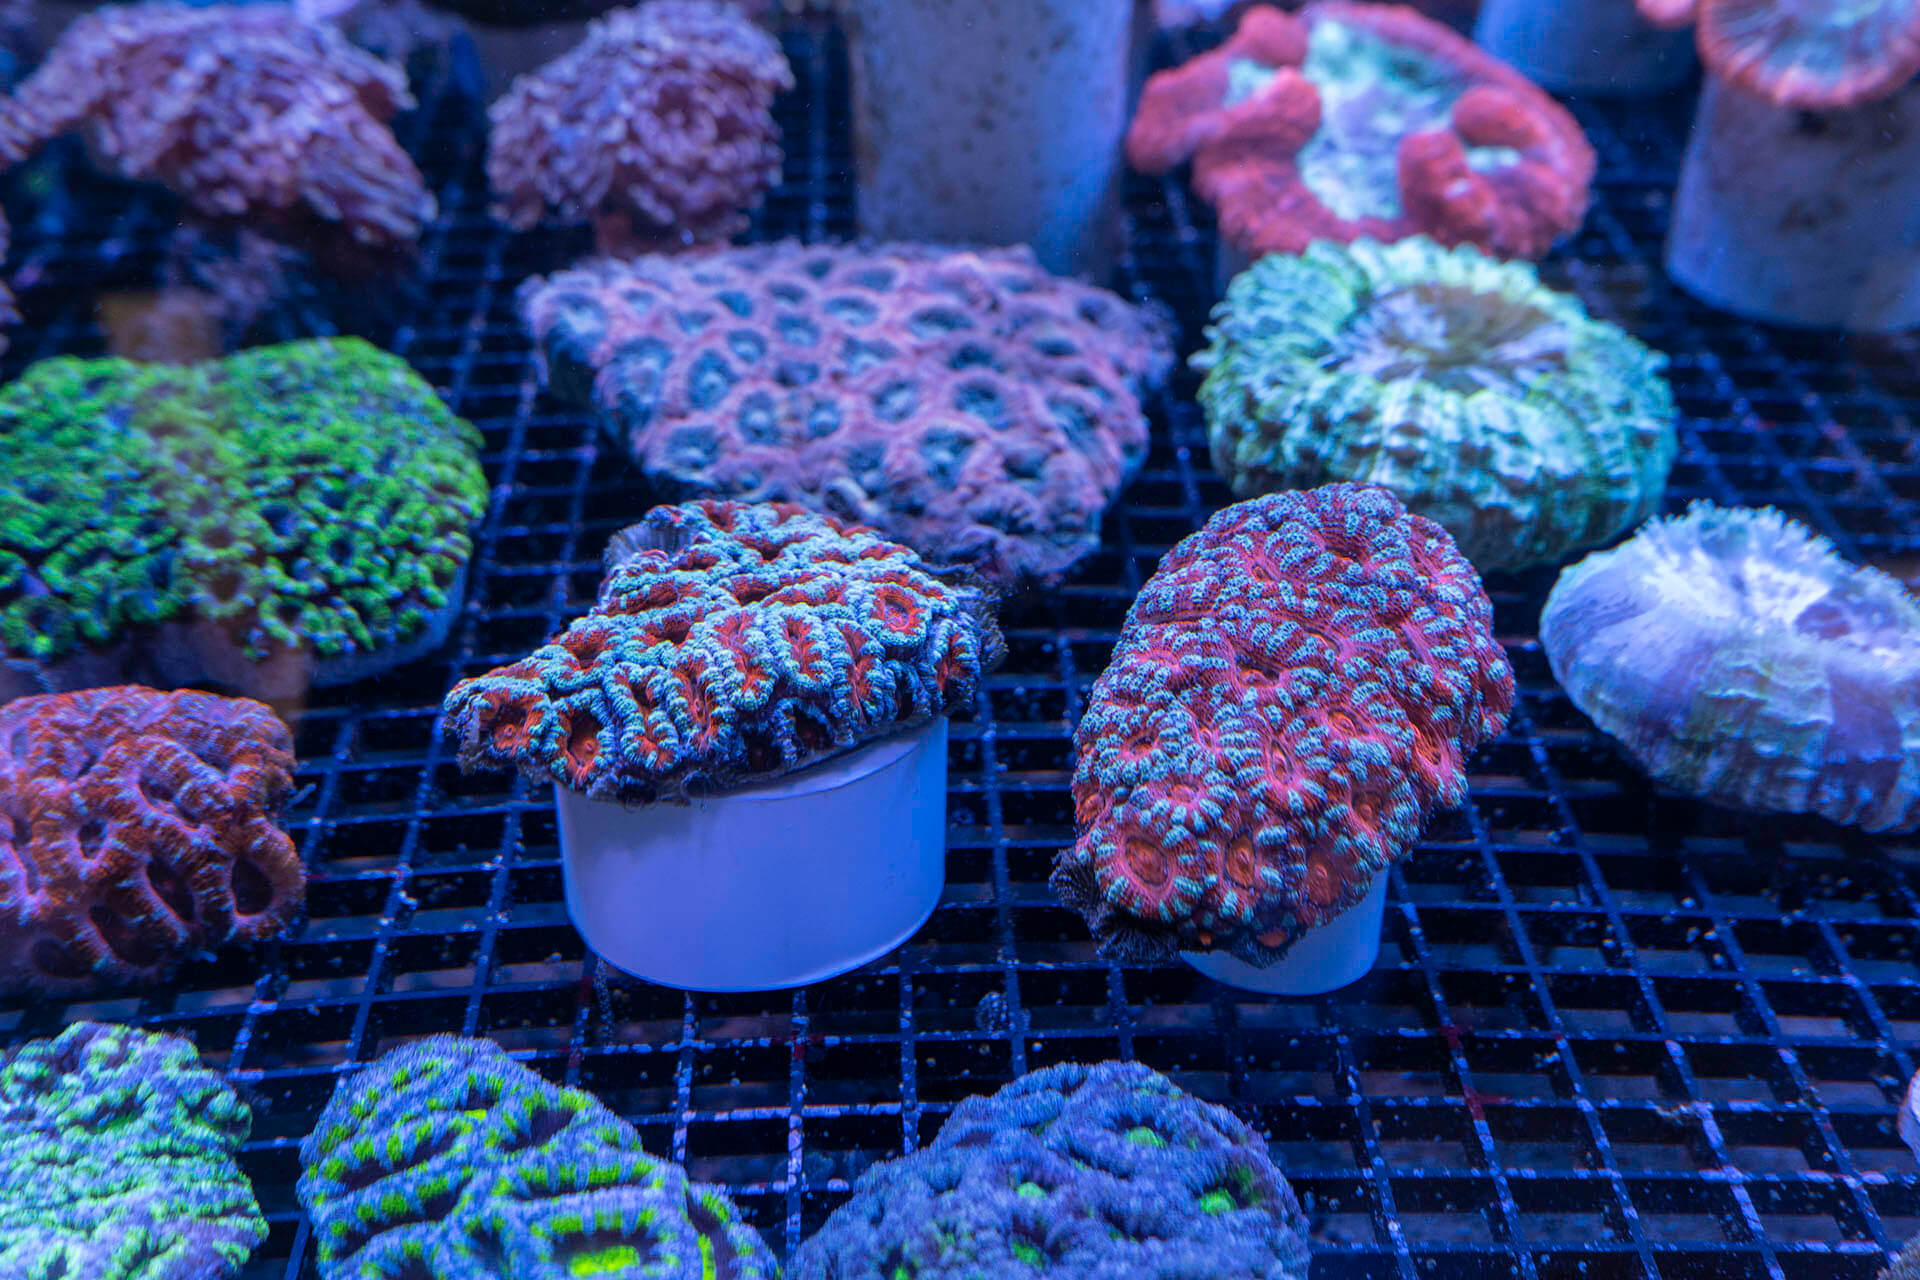 Mature Live Coral & Frag Specimens